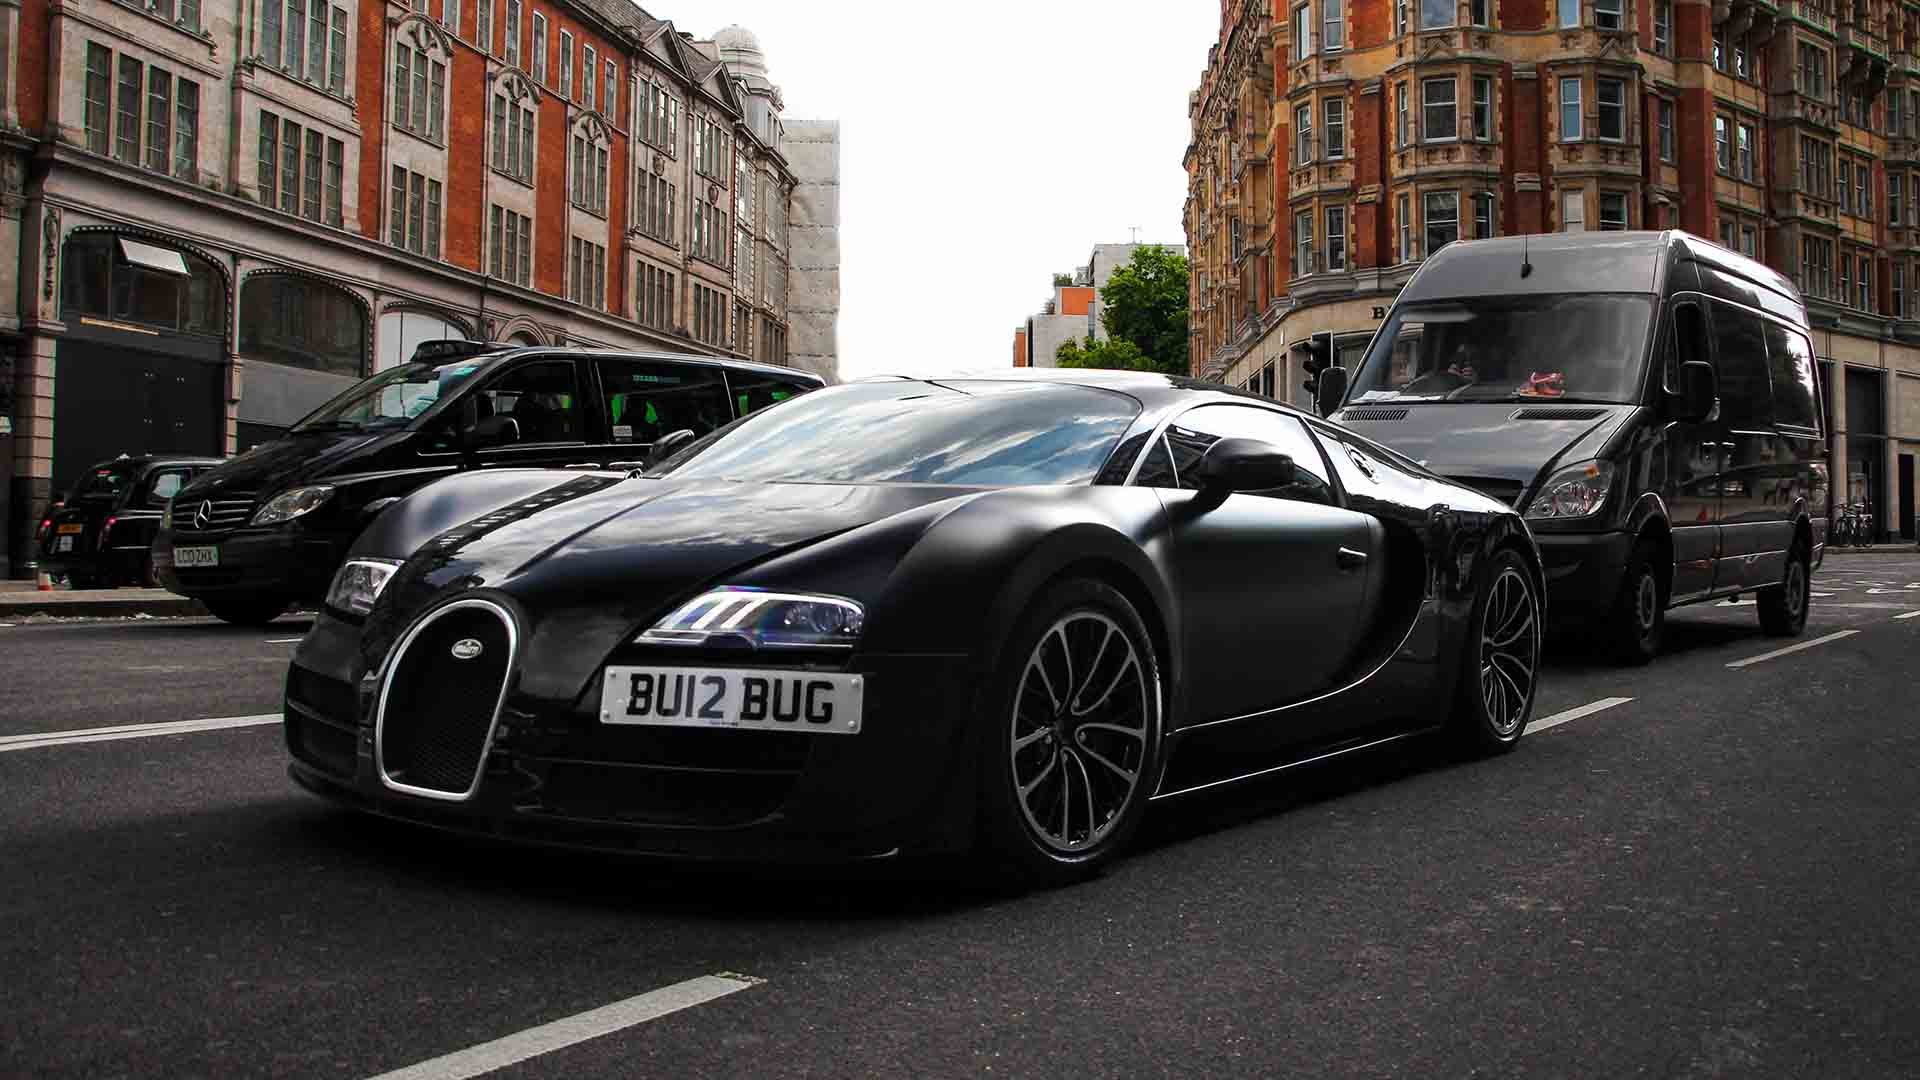 Bugatti Veyron in London